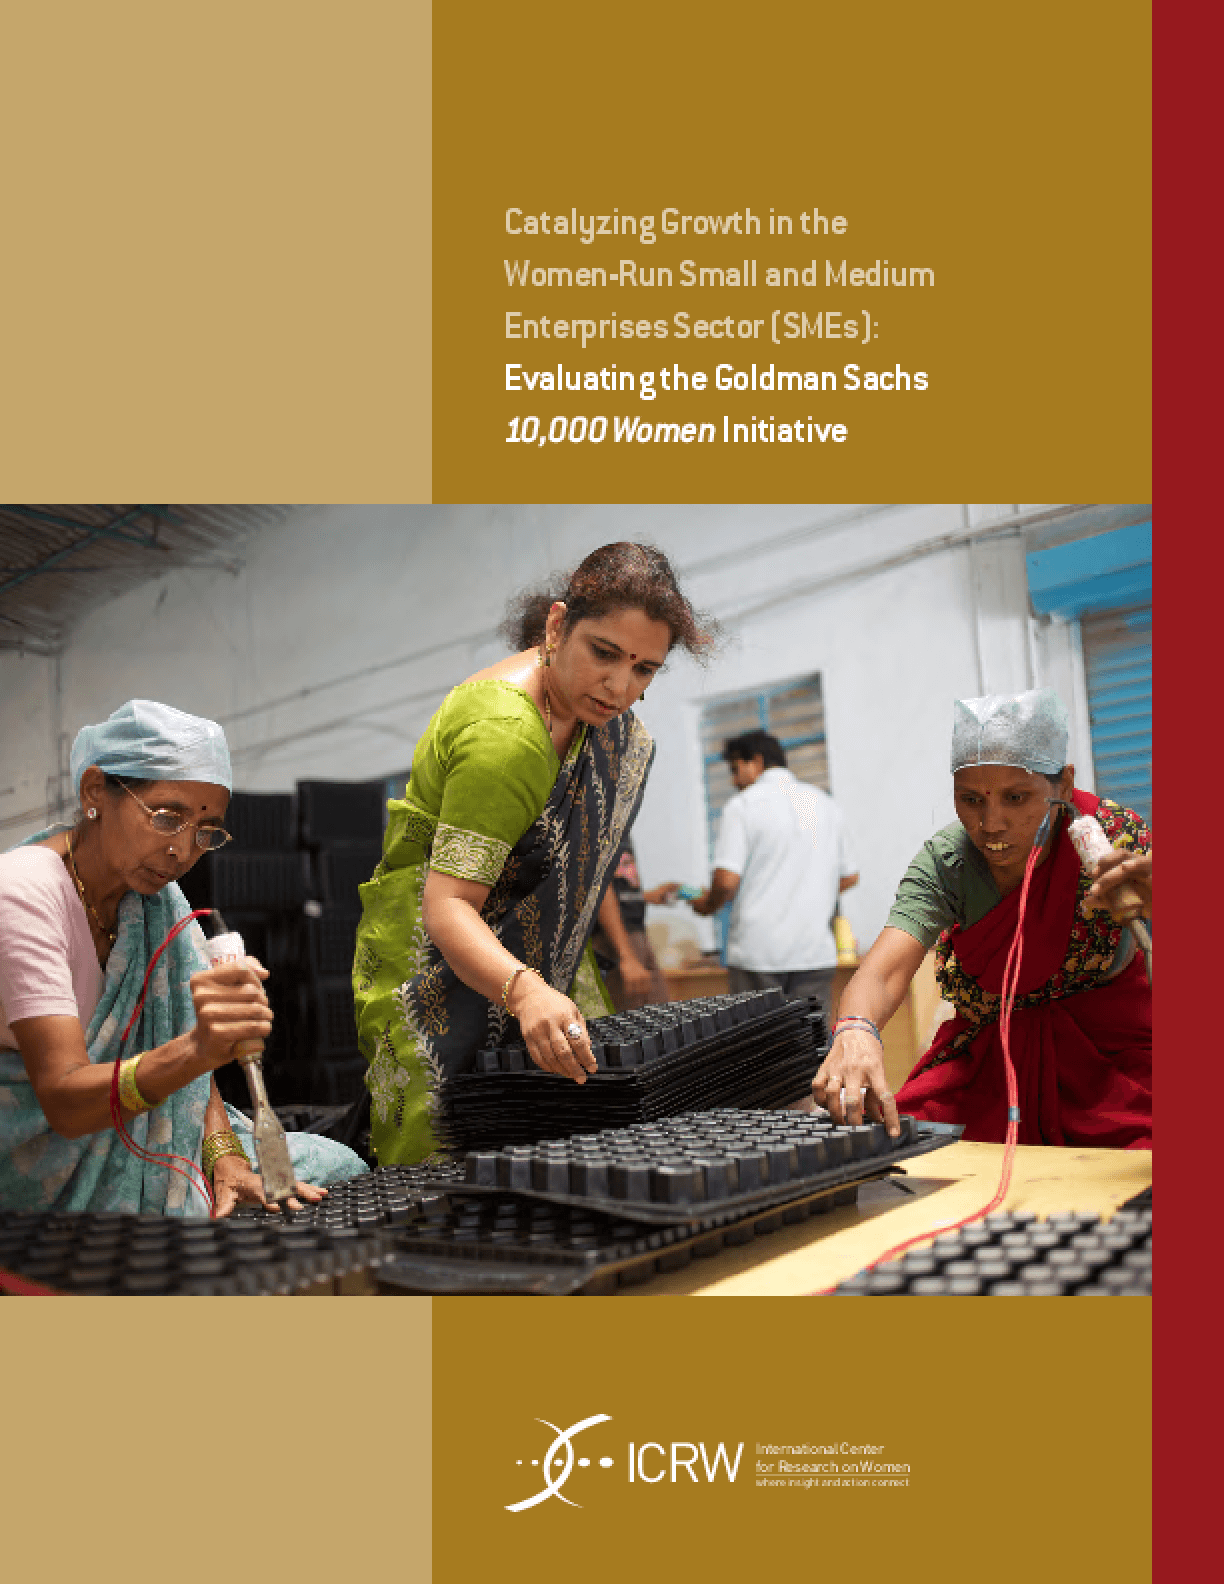 Catalyzing Growth in the Women-Run Small and Medium Enterprises Sector (SMEs): Evaluating the Goldman Sachs 10,000 Women Initiative